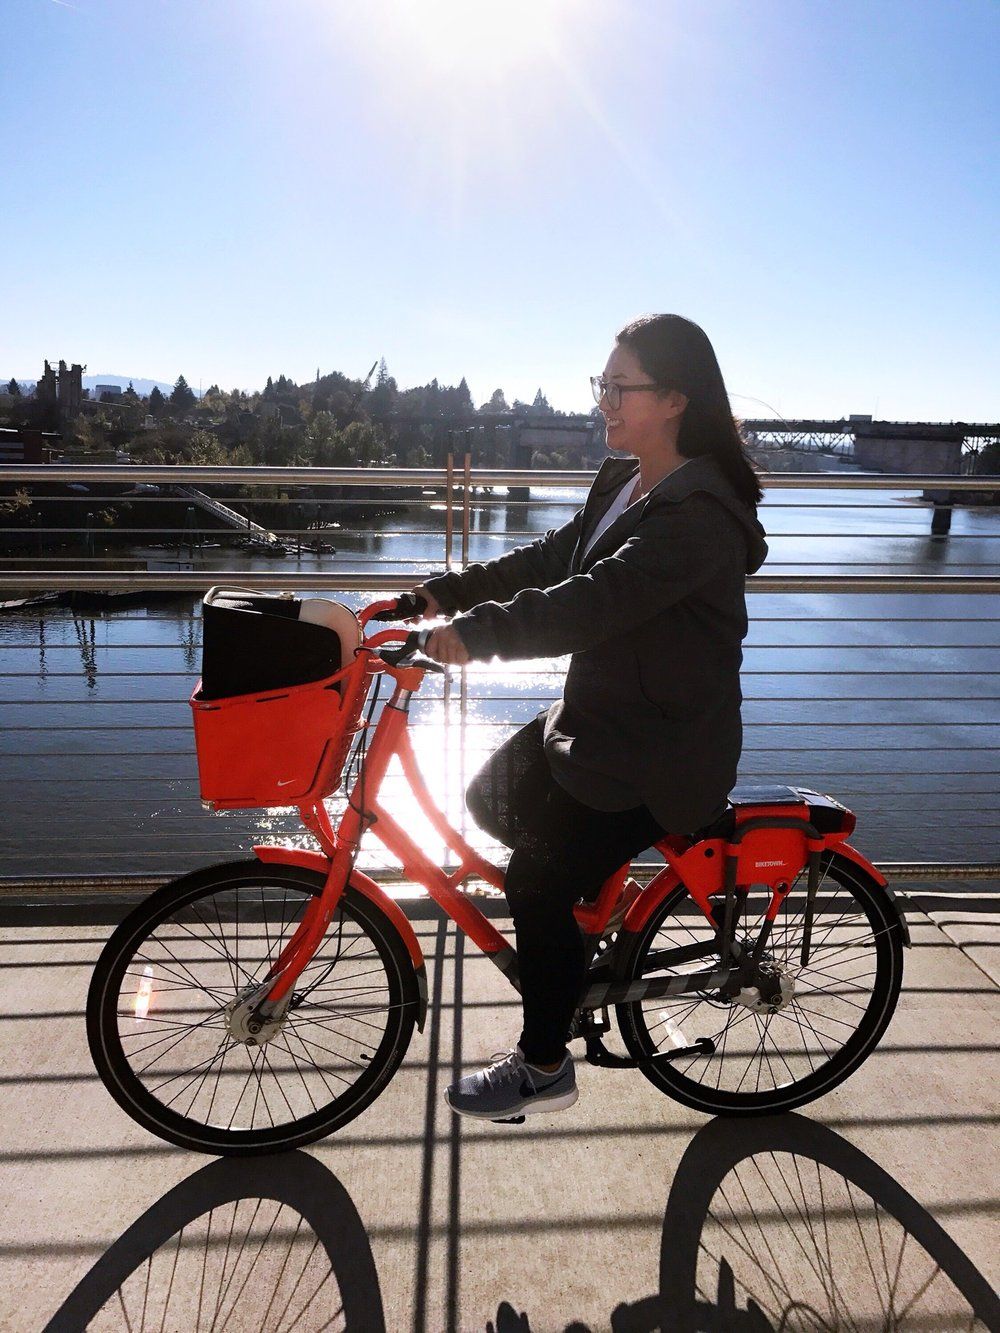 Missy-creed-bike-share-program-portland-or